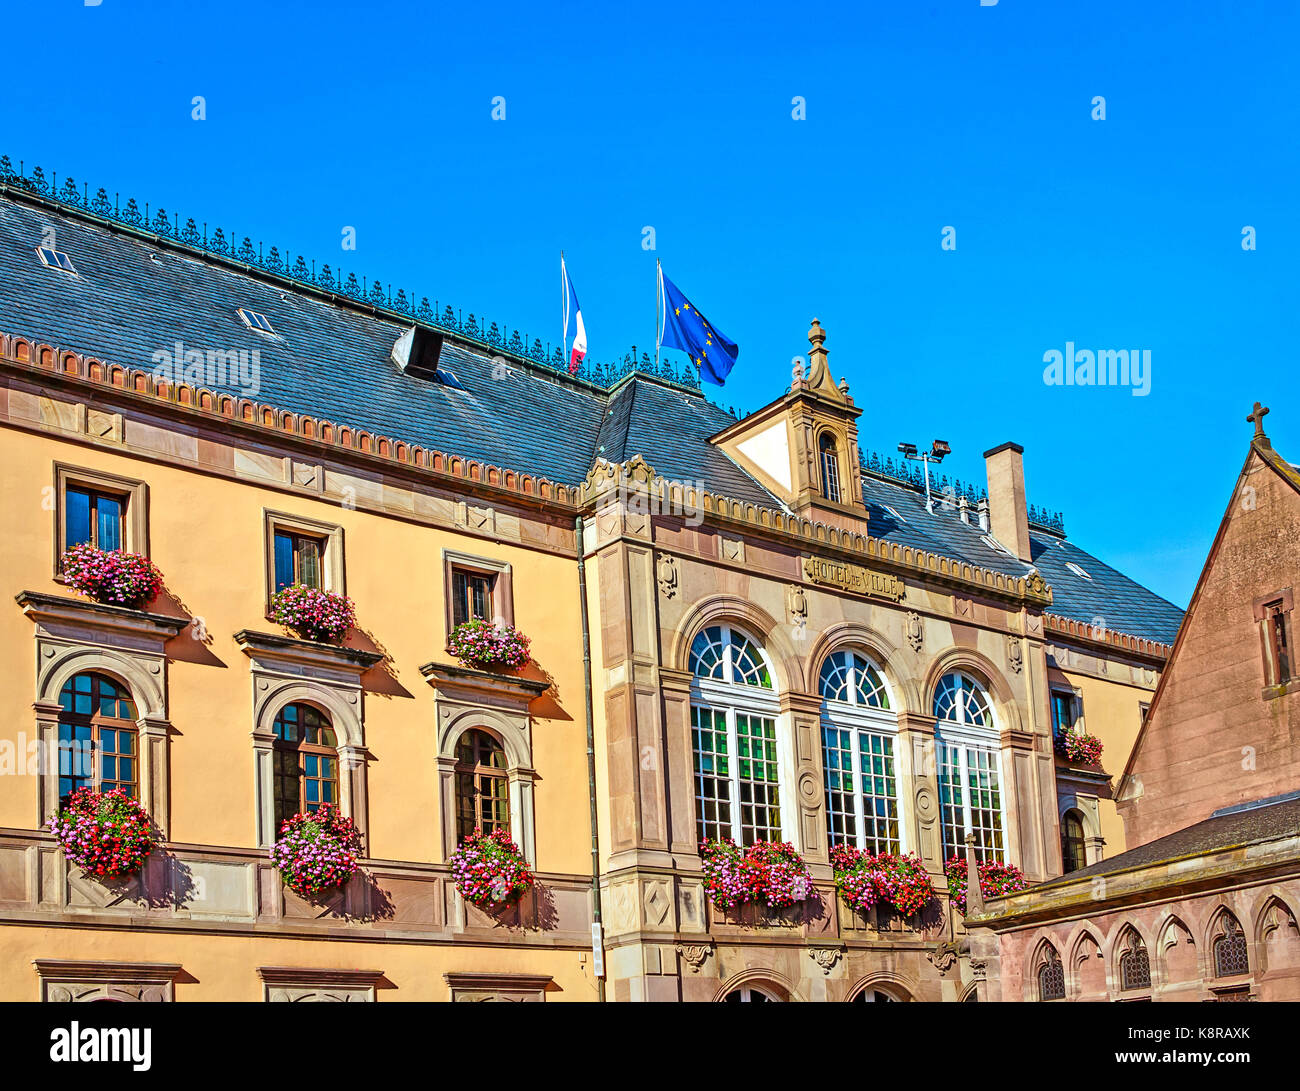 Neo-Renaissance style picturesque town hall at the market square in Obernai, near Strasbourg, Alsace, France - Stock Image